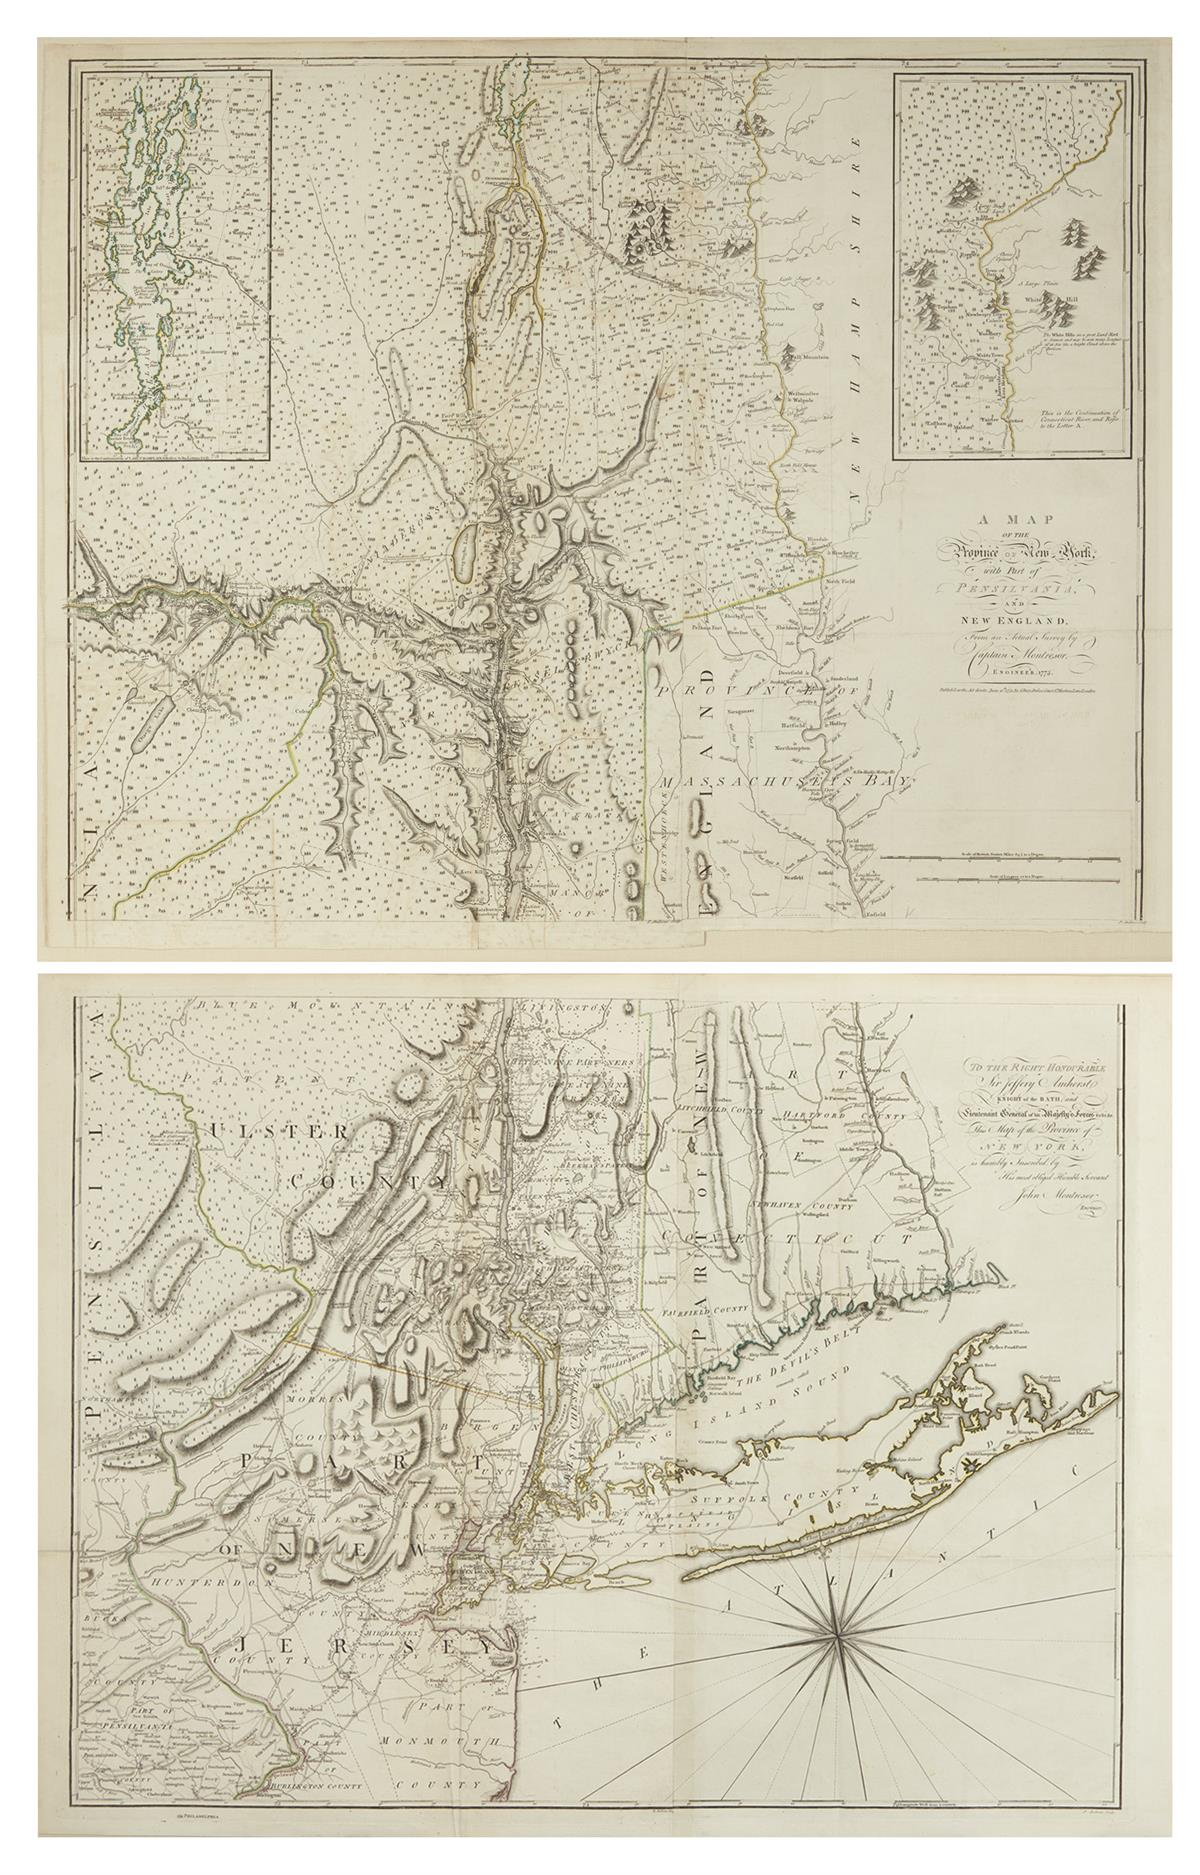 MONTRESOR-JOHN-A-Map-of-the-Province-of-New-York-with-Part-o